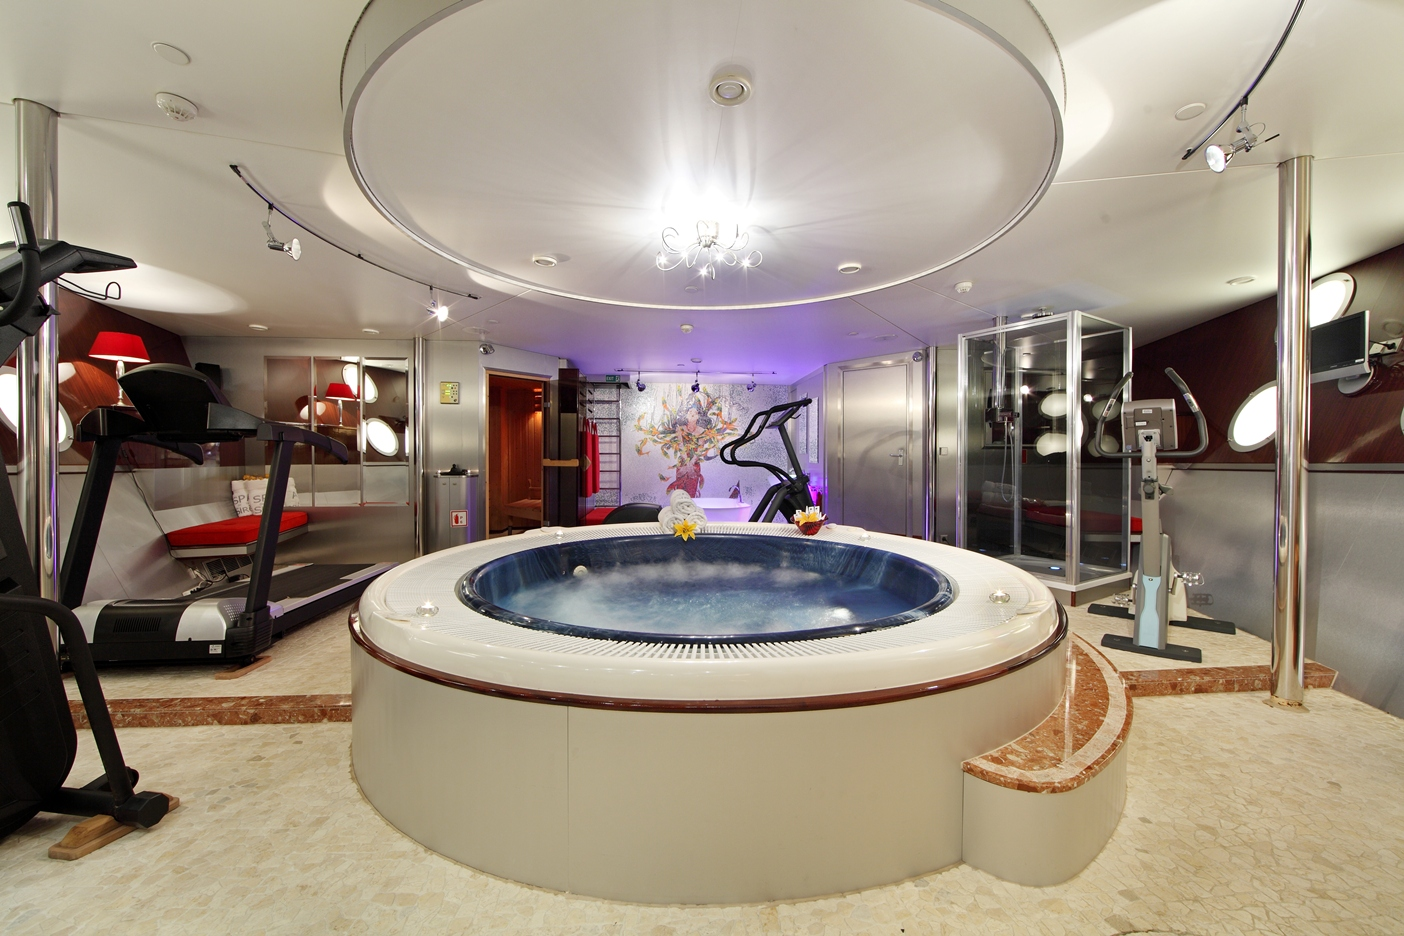 Luxury Home Gym Design Family Fitness as well Celebrity Home Gyms likewise Inside Atlantas Expensive Home With 11 Bathrooms Bedrooms Movie Theater SEVEN Kitchens Youd Leave together with Amazing Home Gyms furthermore The Palace Of The Lost City. on luxury home gyms